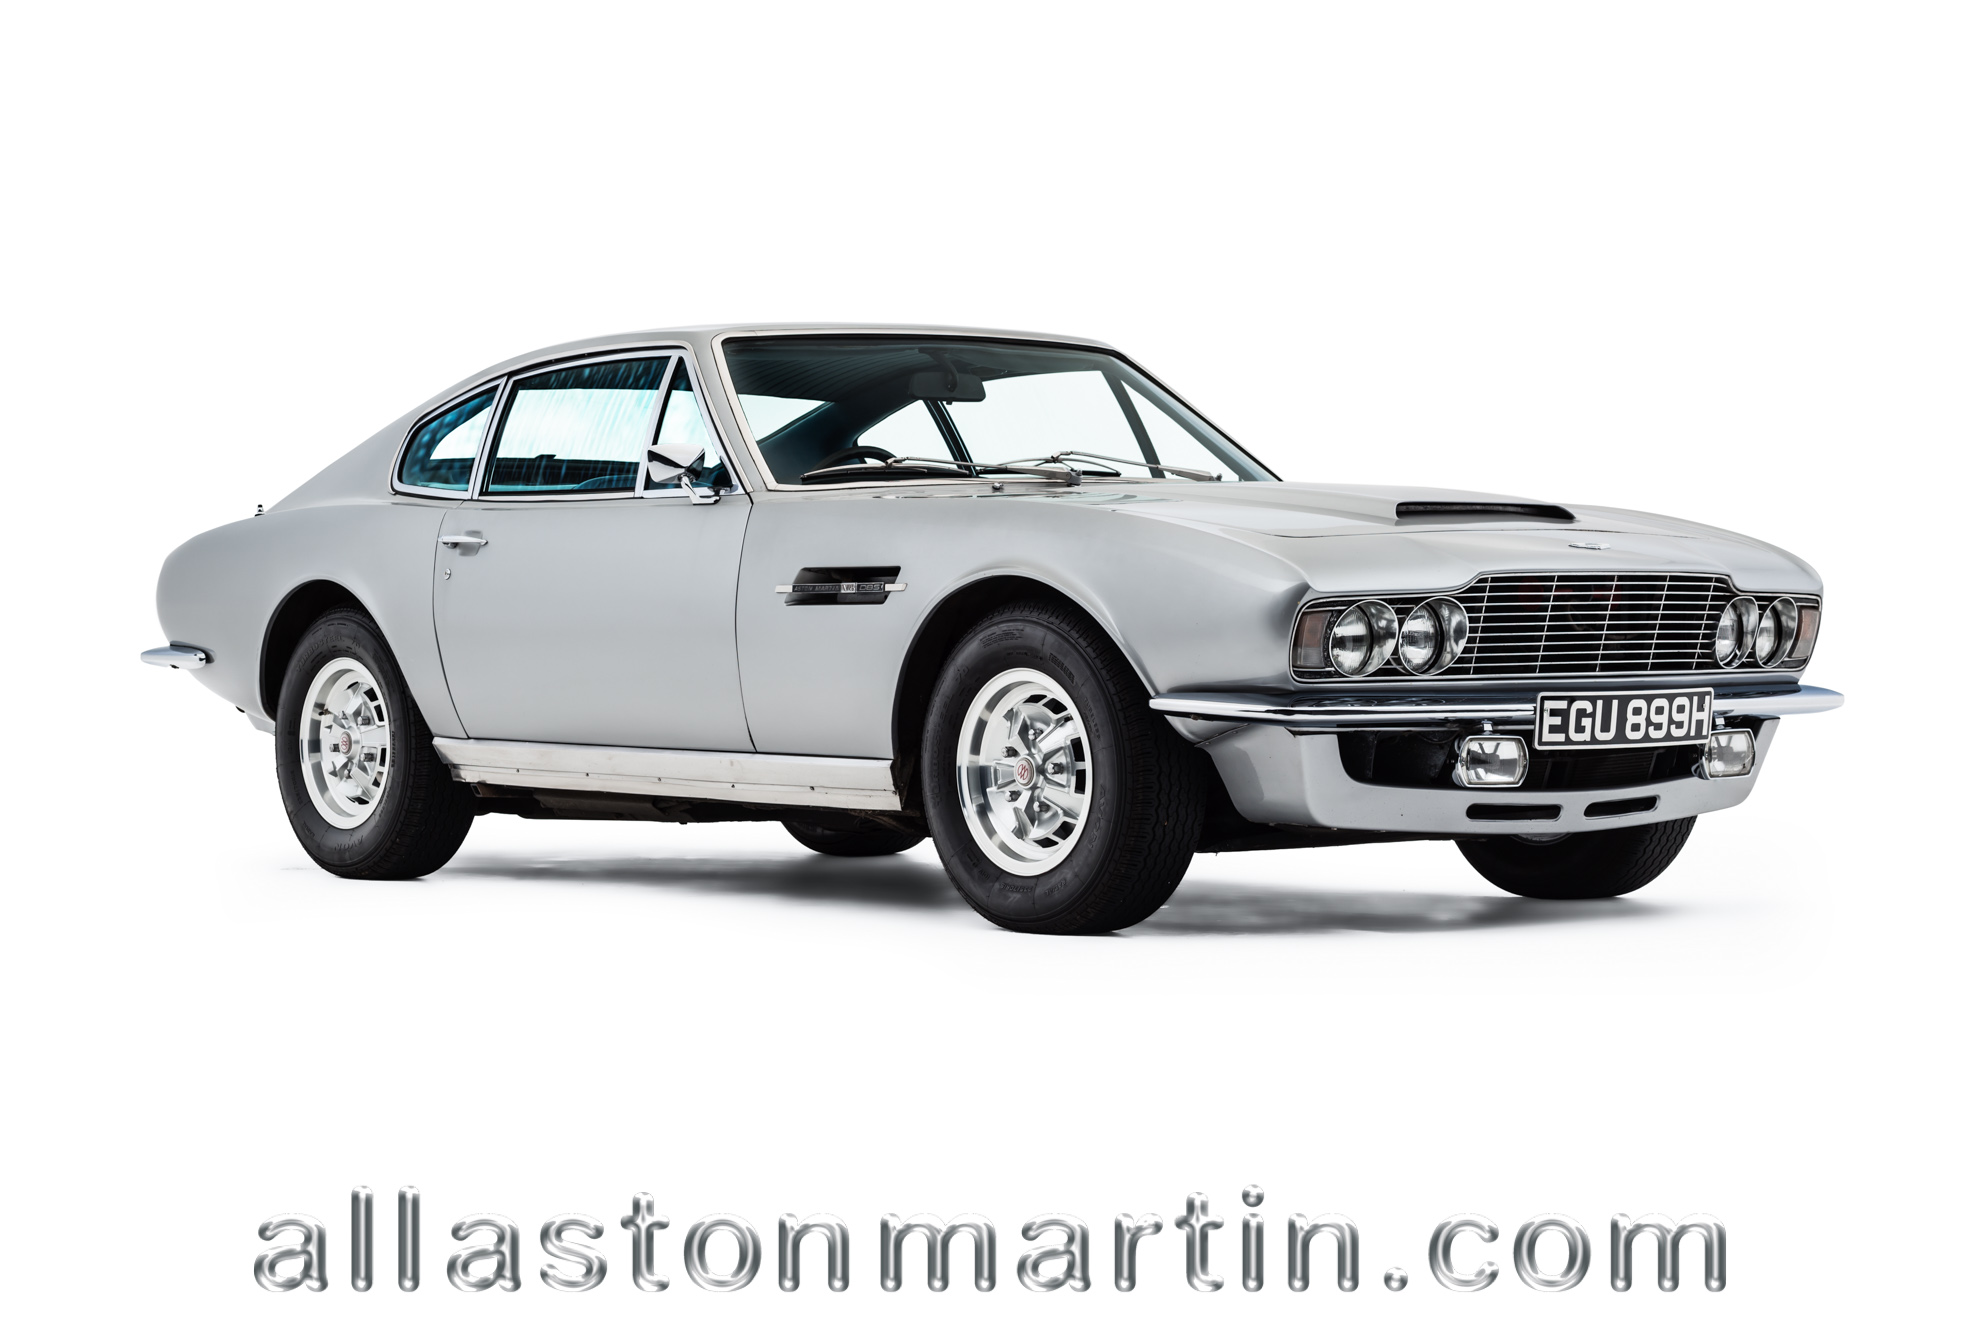 Aston Martin Cars For Sale Buy Aston Martin Details All Aston - Aston martin 1970 for sale